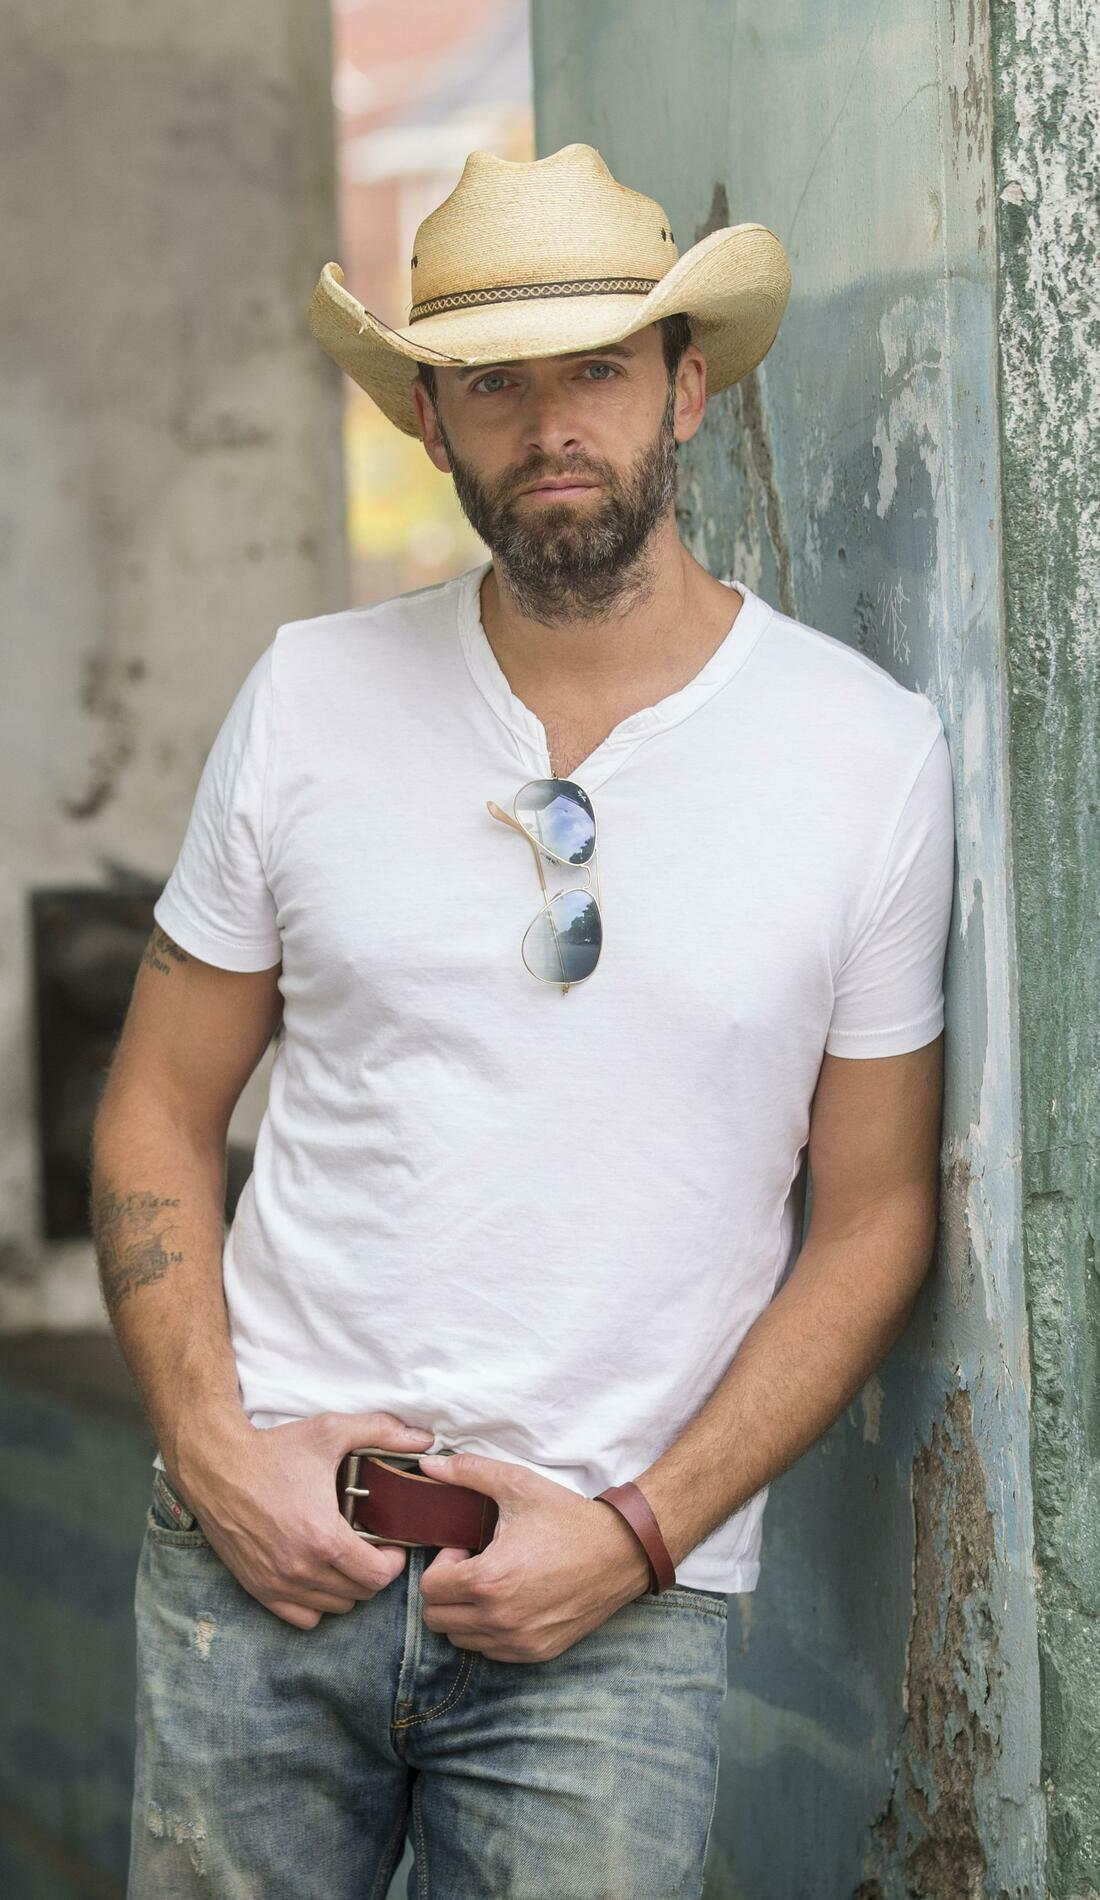 A Dean Brody live event